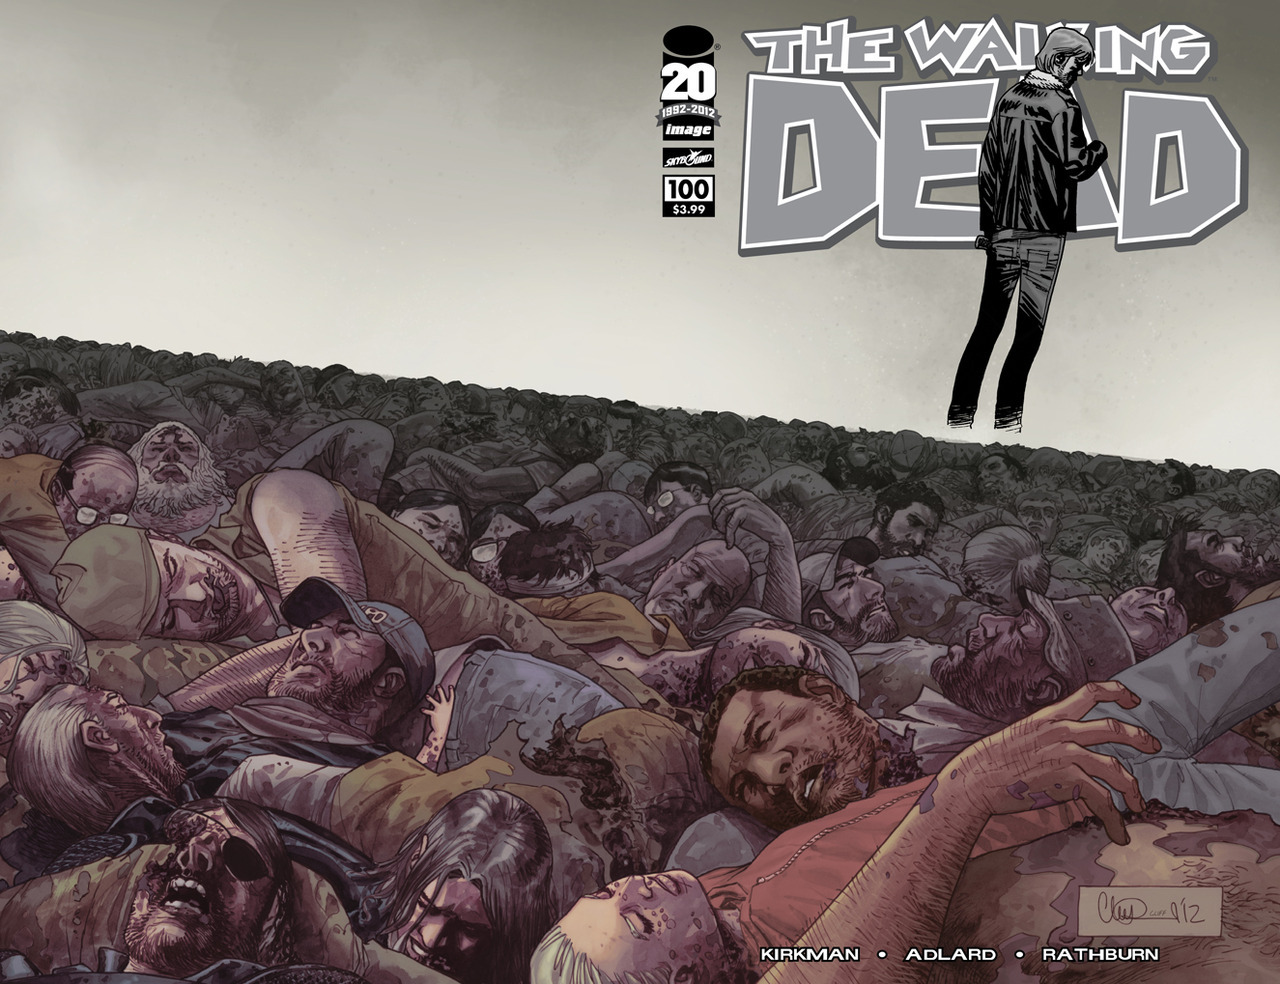 All of THE WALKING DEAD covers! (There is also a black-and-white version of the Adlard wrap-around.)   A: Charlie Adlard B: Marc Silvestri C: Frank Quitely D: Todd McFarlane E: Sean Phillips F: Bryan Hitch G: Ryan Ottley H: Charlie Adlard  If you are not viewing this on Tumblr, click here to see all of the images.